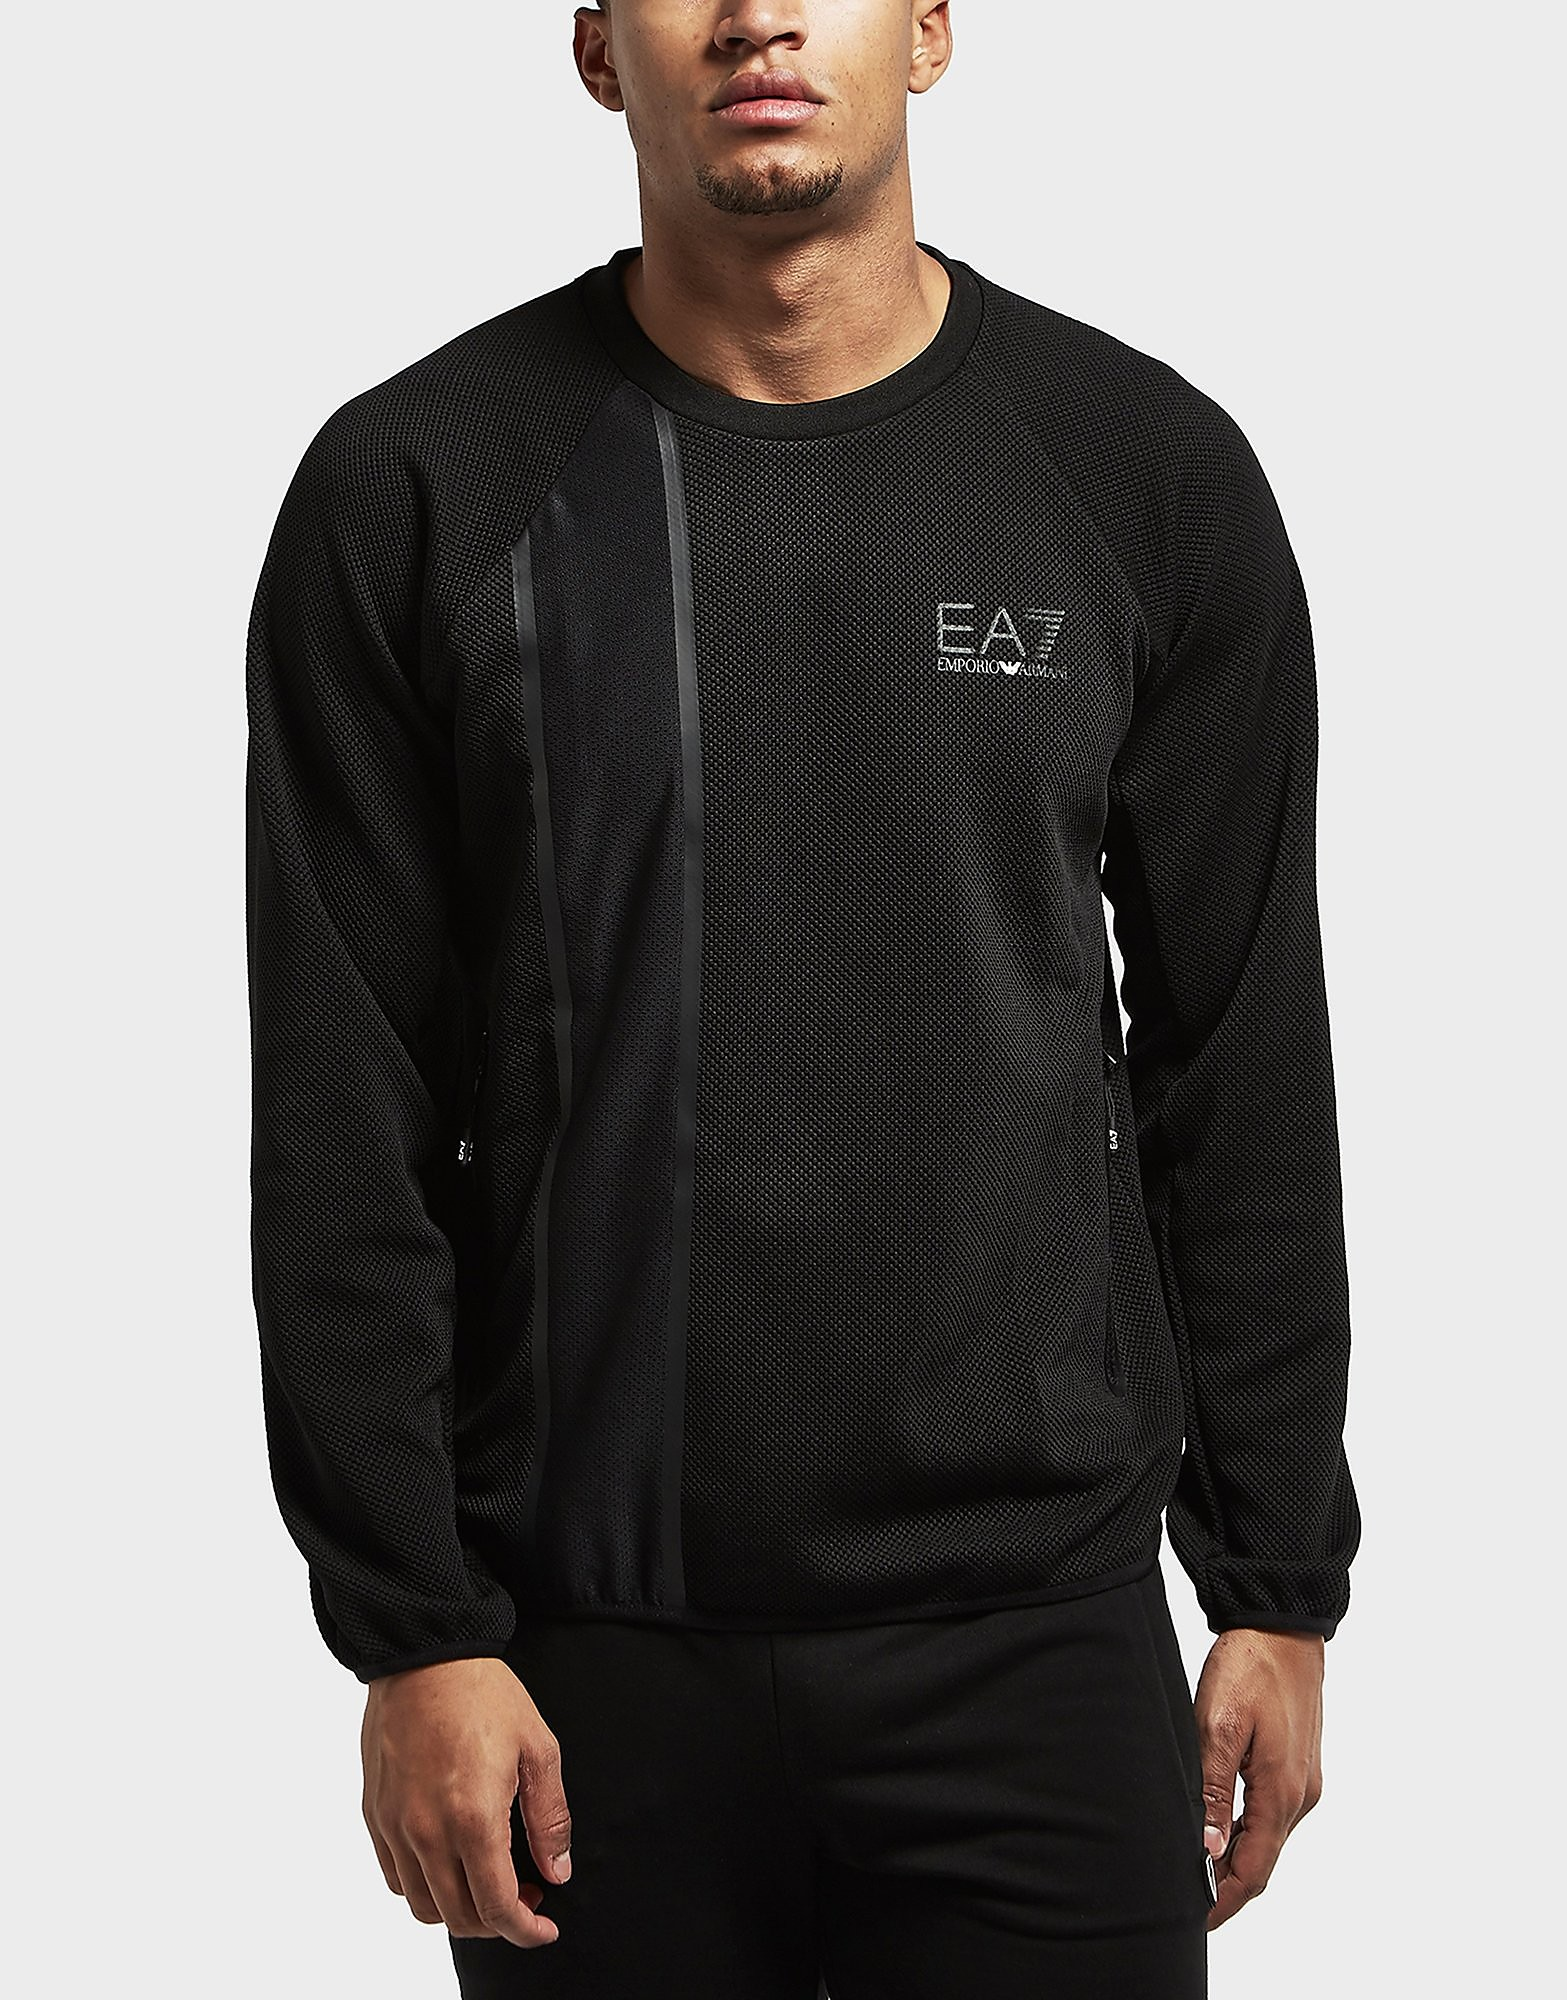 Emporio Armani EA7 Train Evolution Long Sleeve T-Shirt